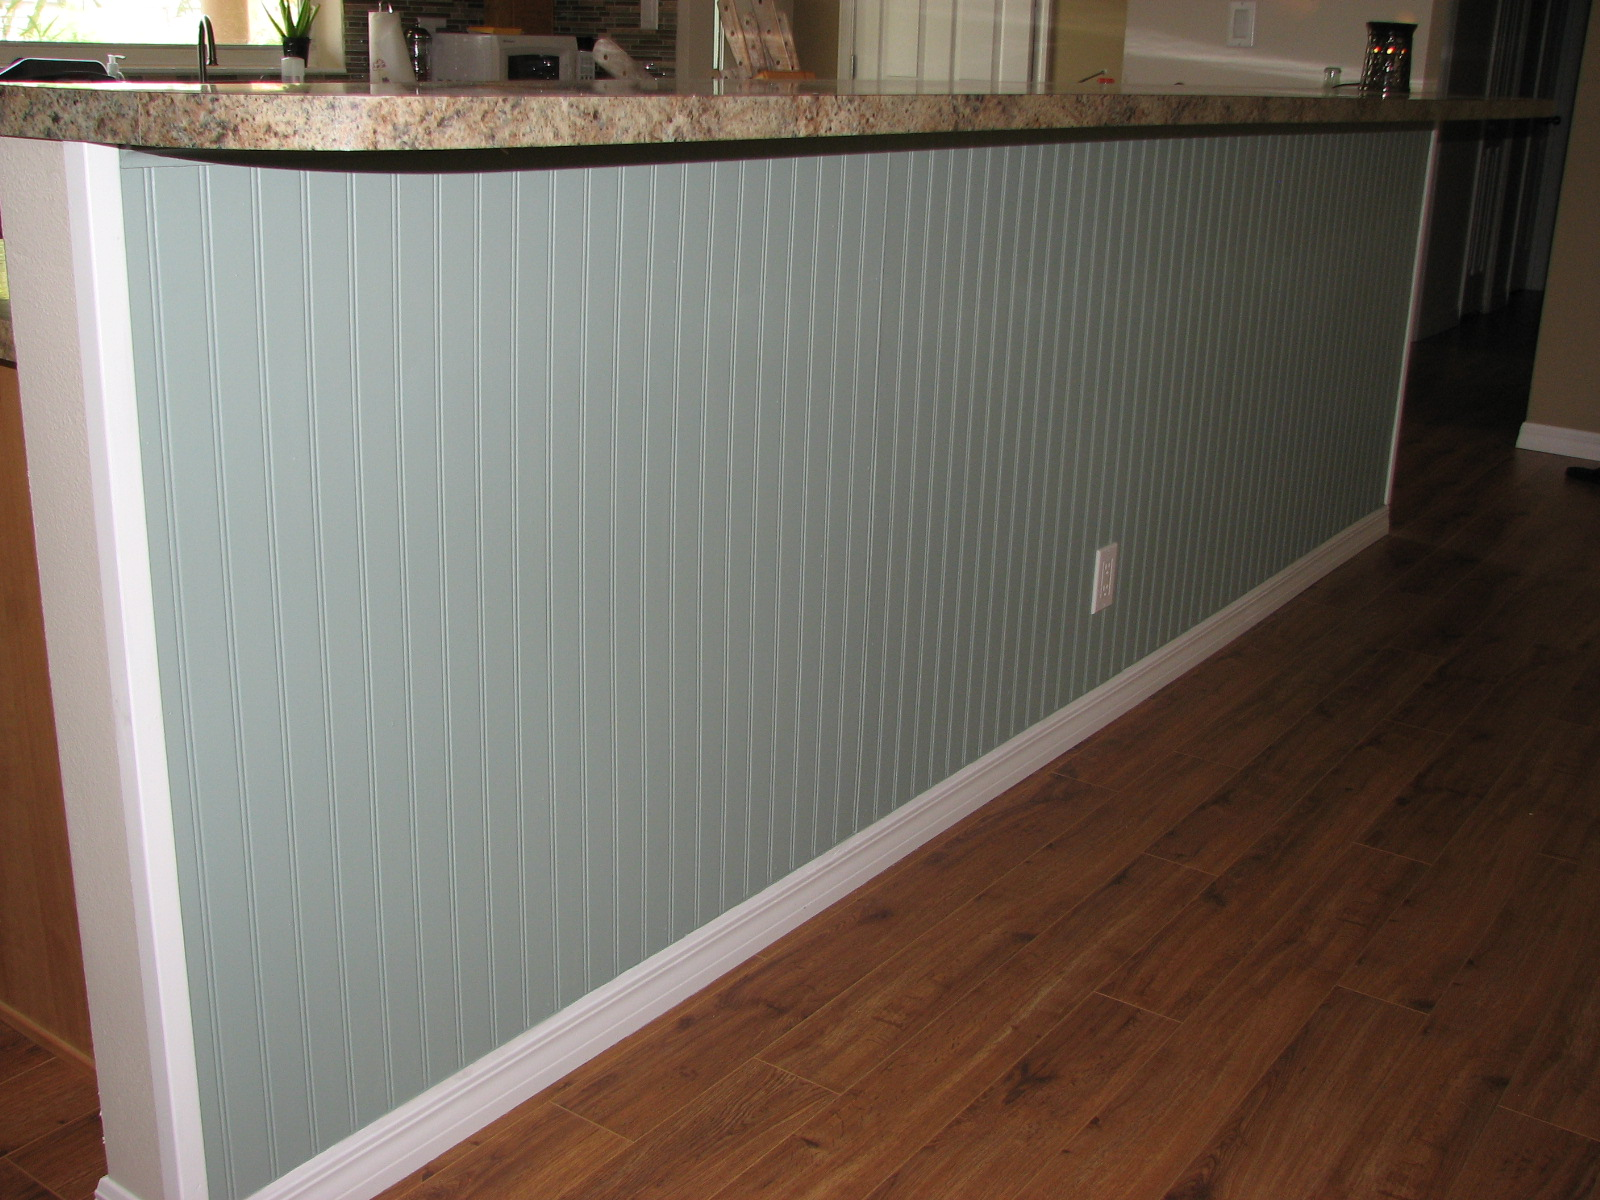 Best Kitchen Gallery: Beach House Wainscoting Bead Board In Cocoa Beach Florida of Beadboard Paneling In Kitchen on rachelxblog.com